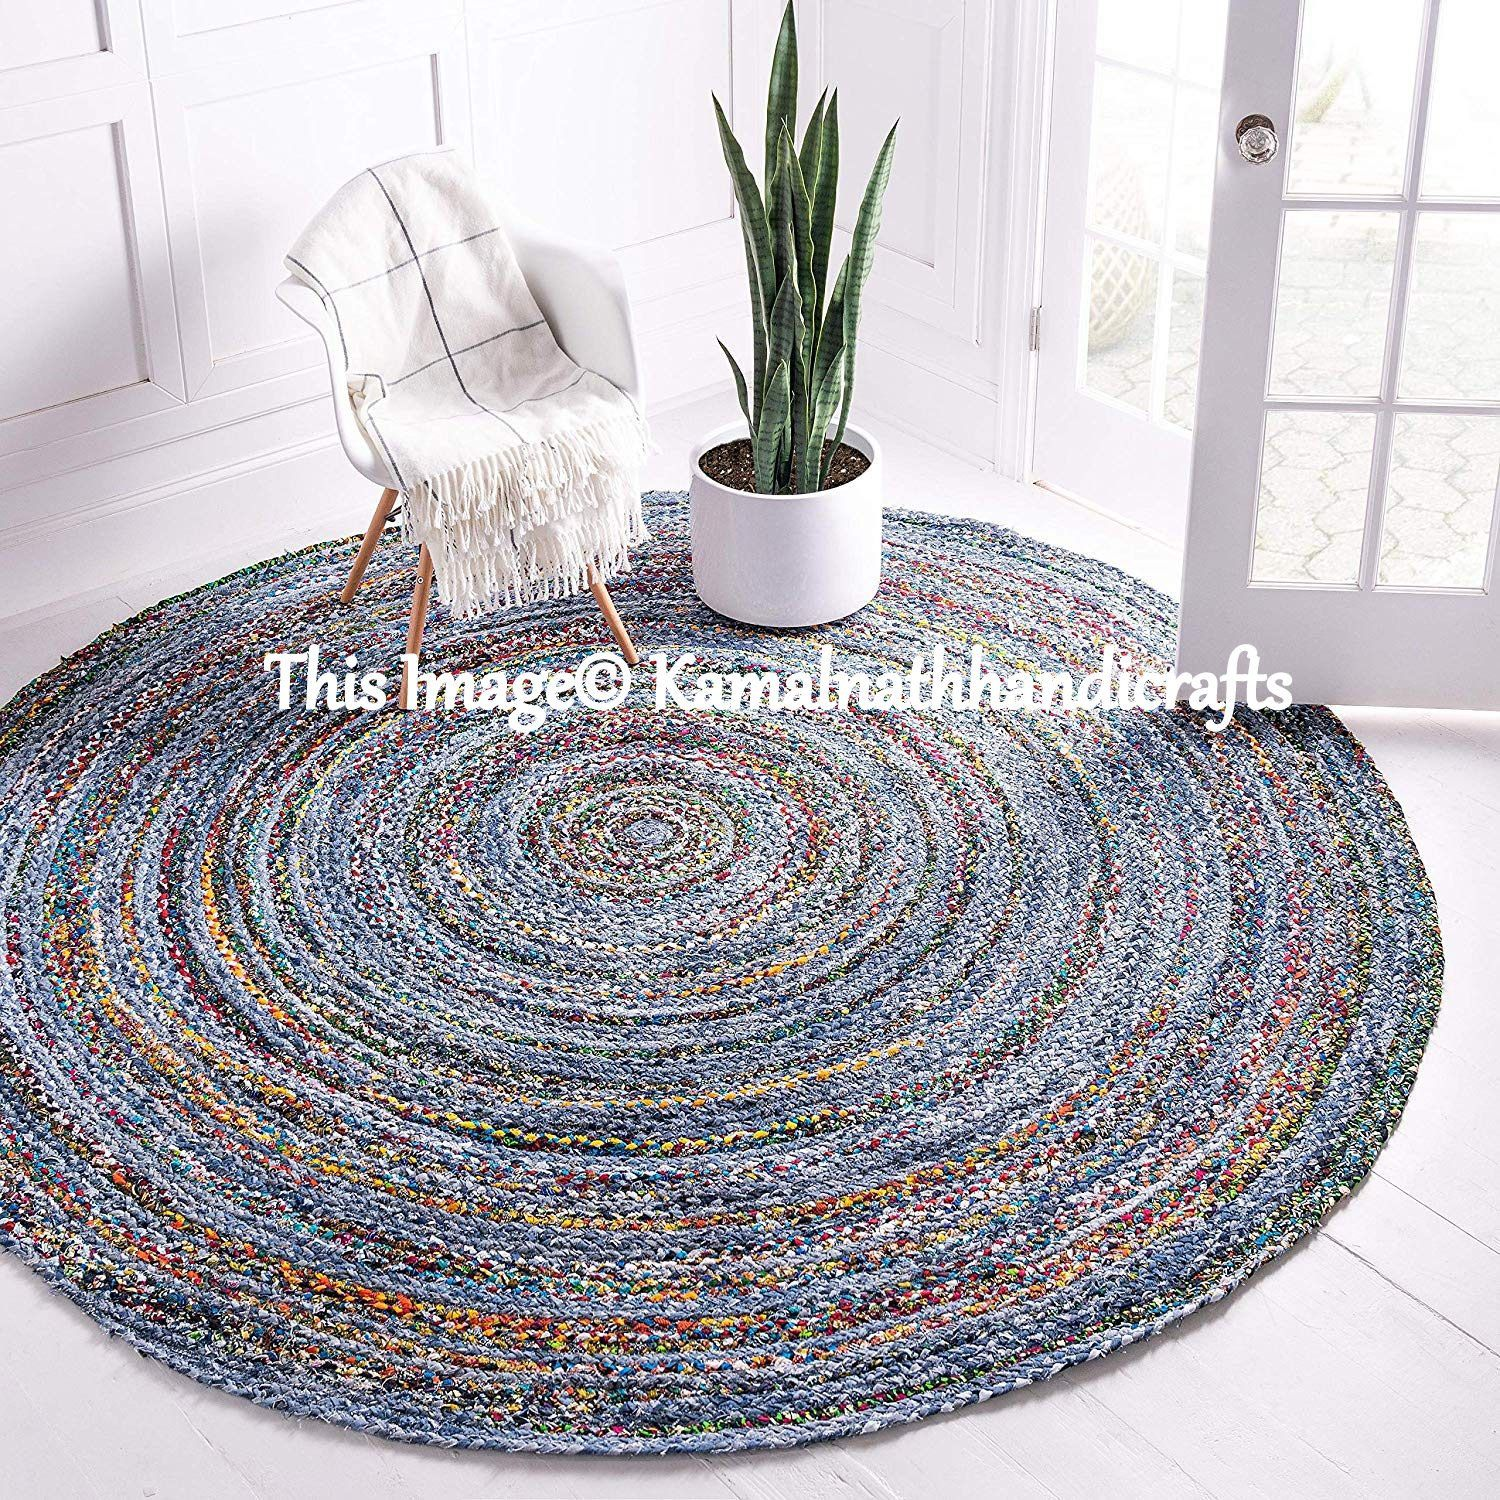 Hand Made Bohemian Braided Cotton Area Rug in Multi Color Chindi Round Carpet